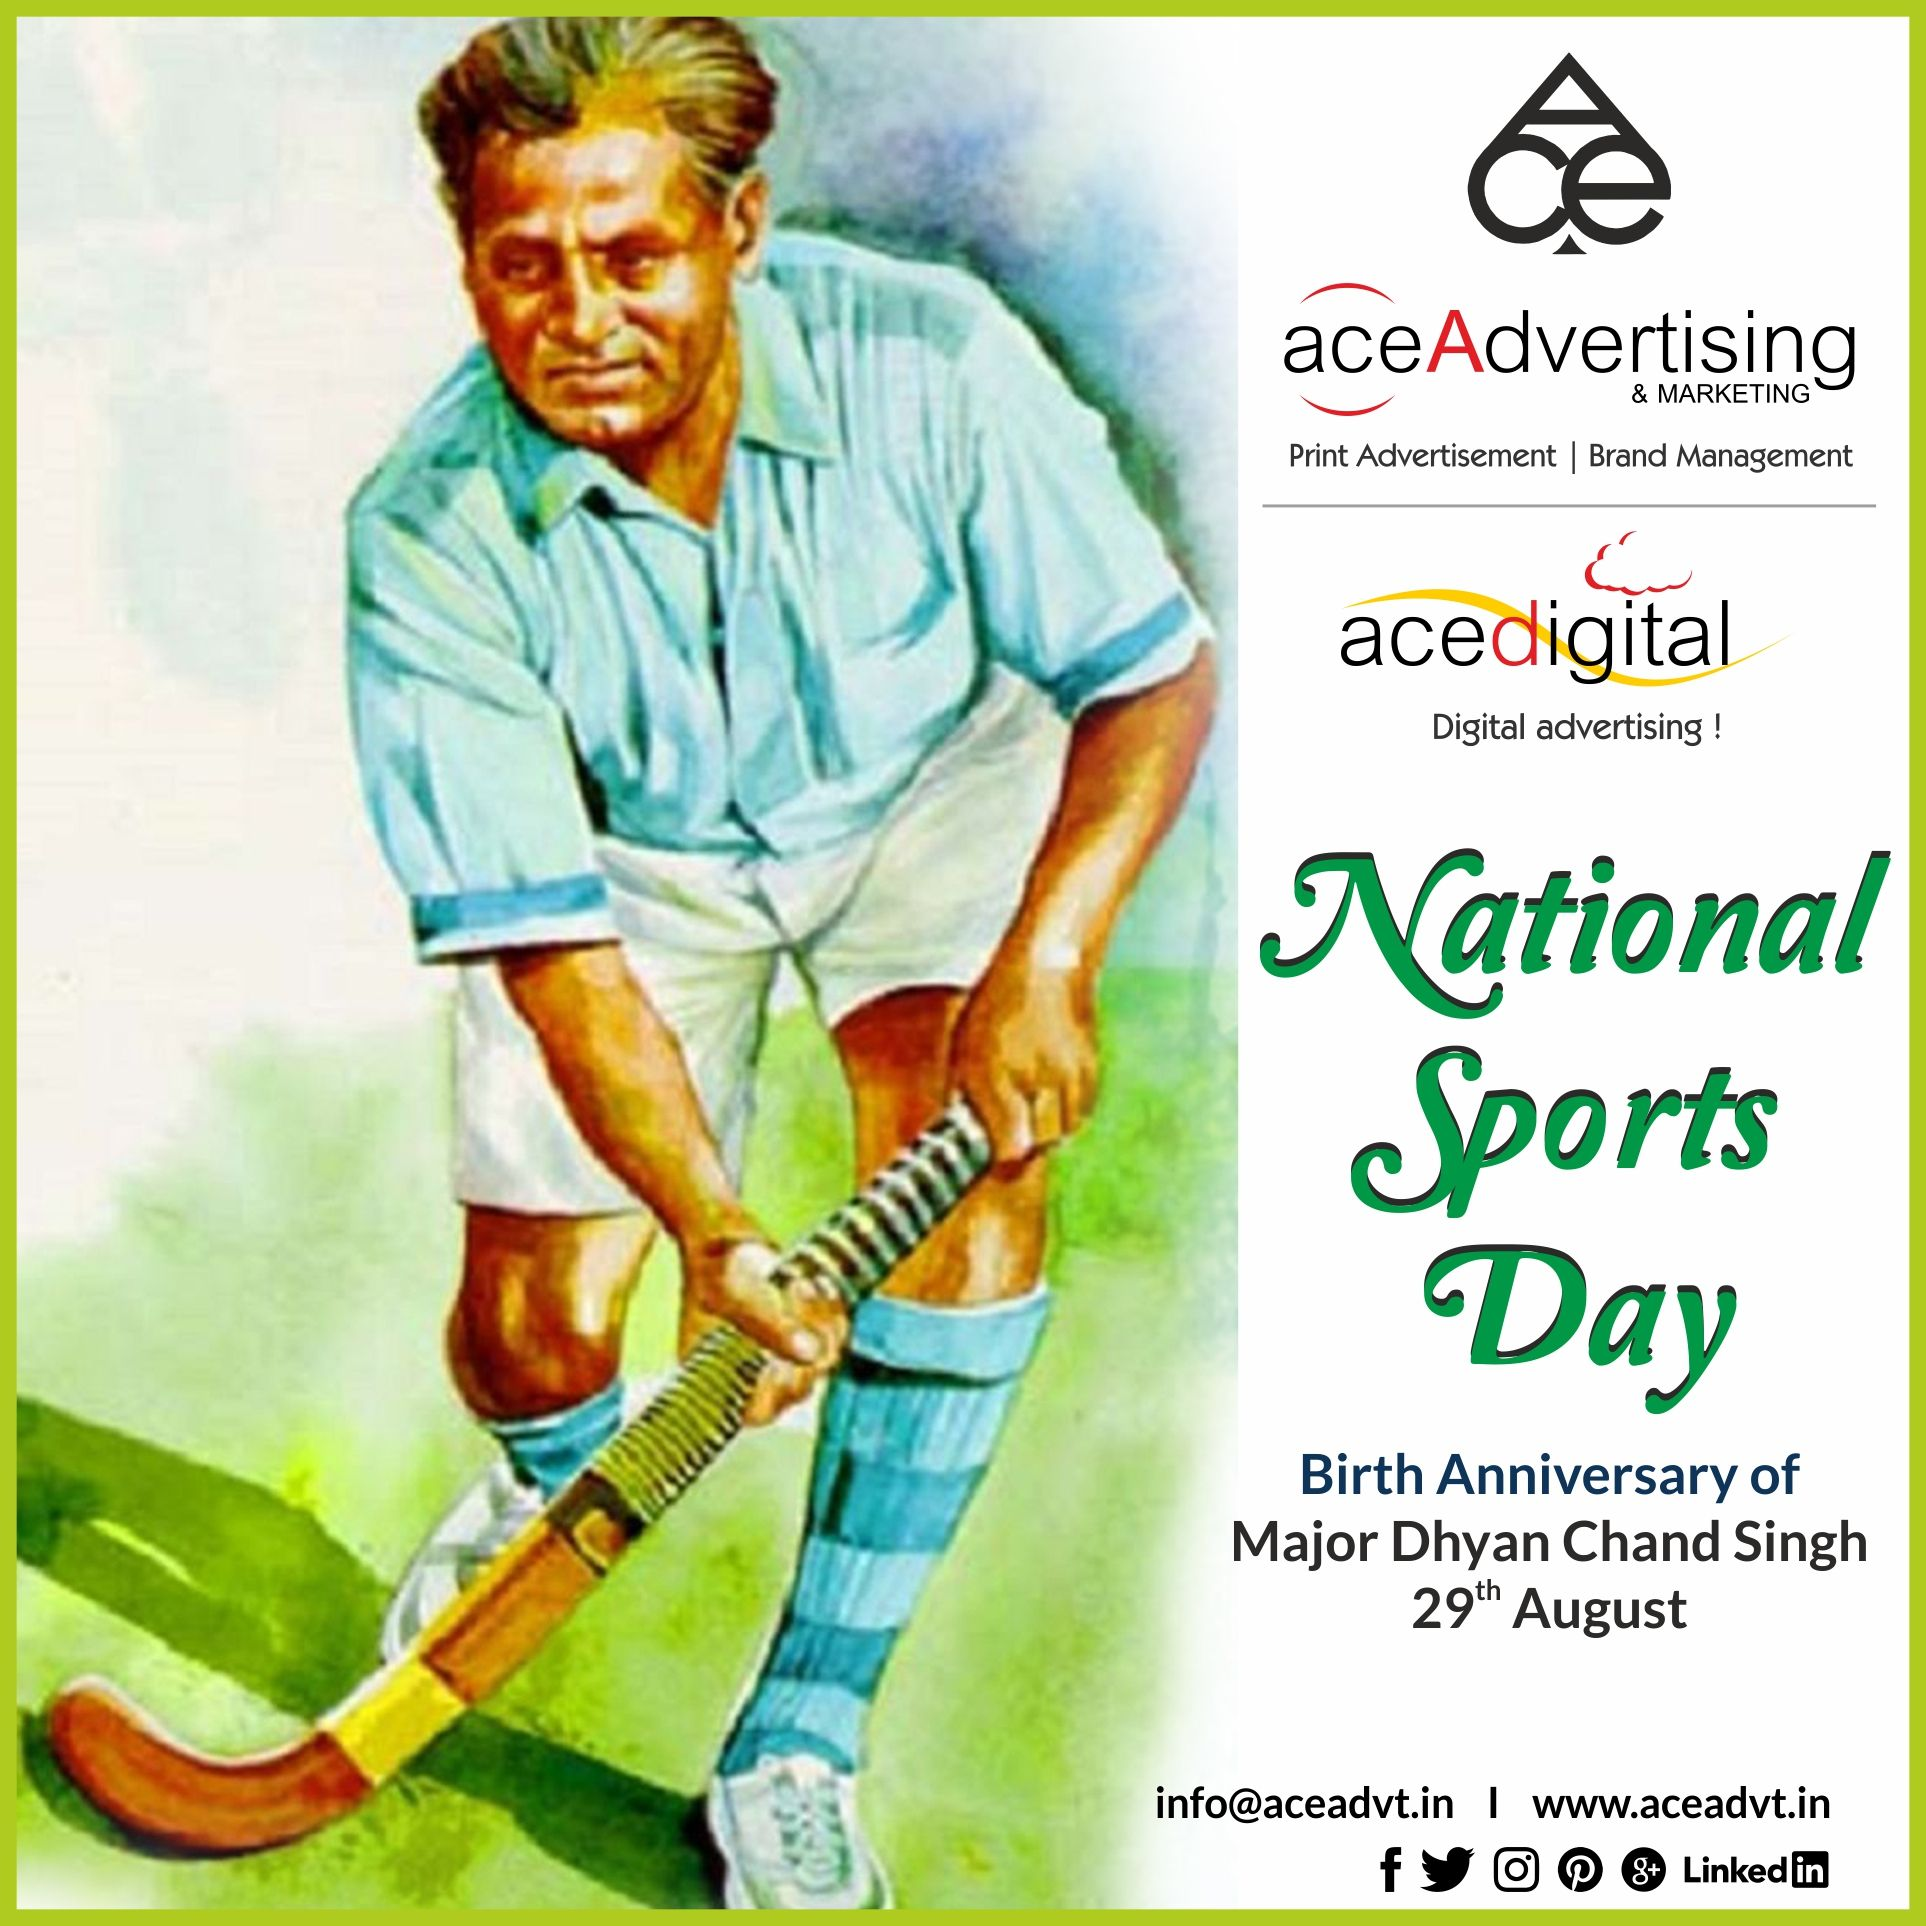 The National Sports Day in India is celebrated on 29